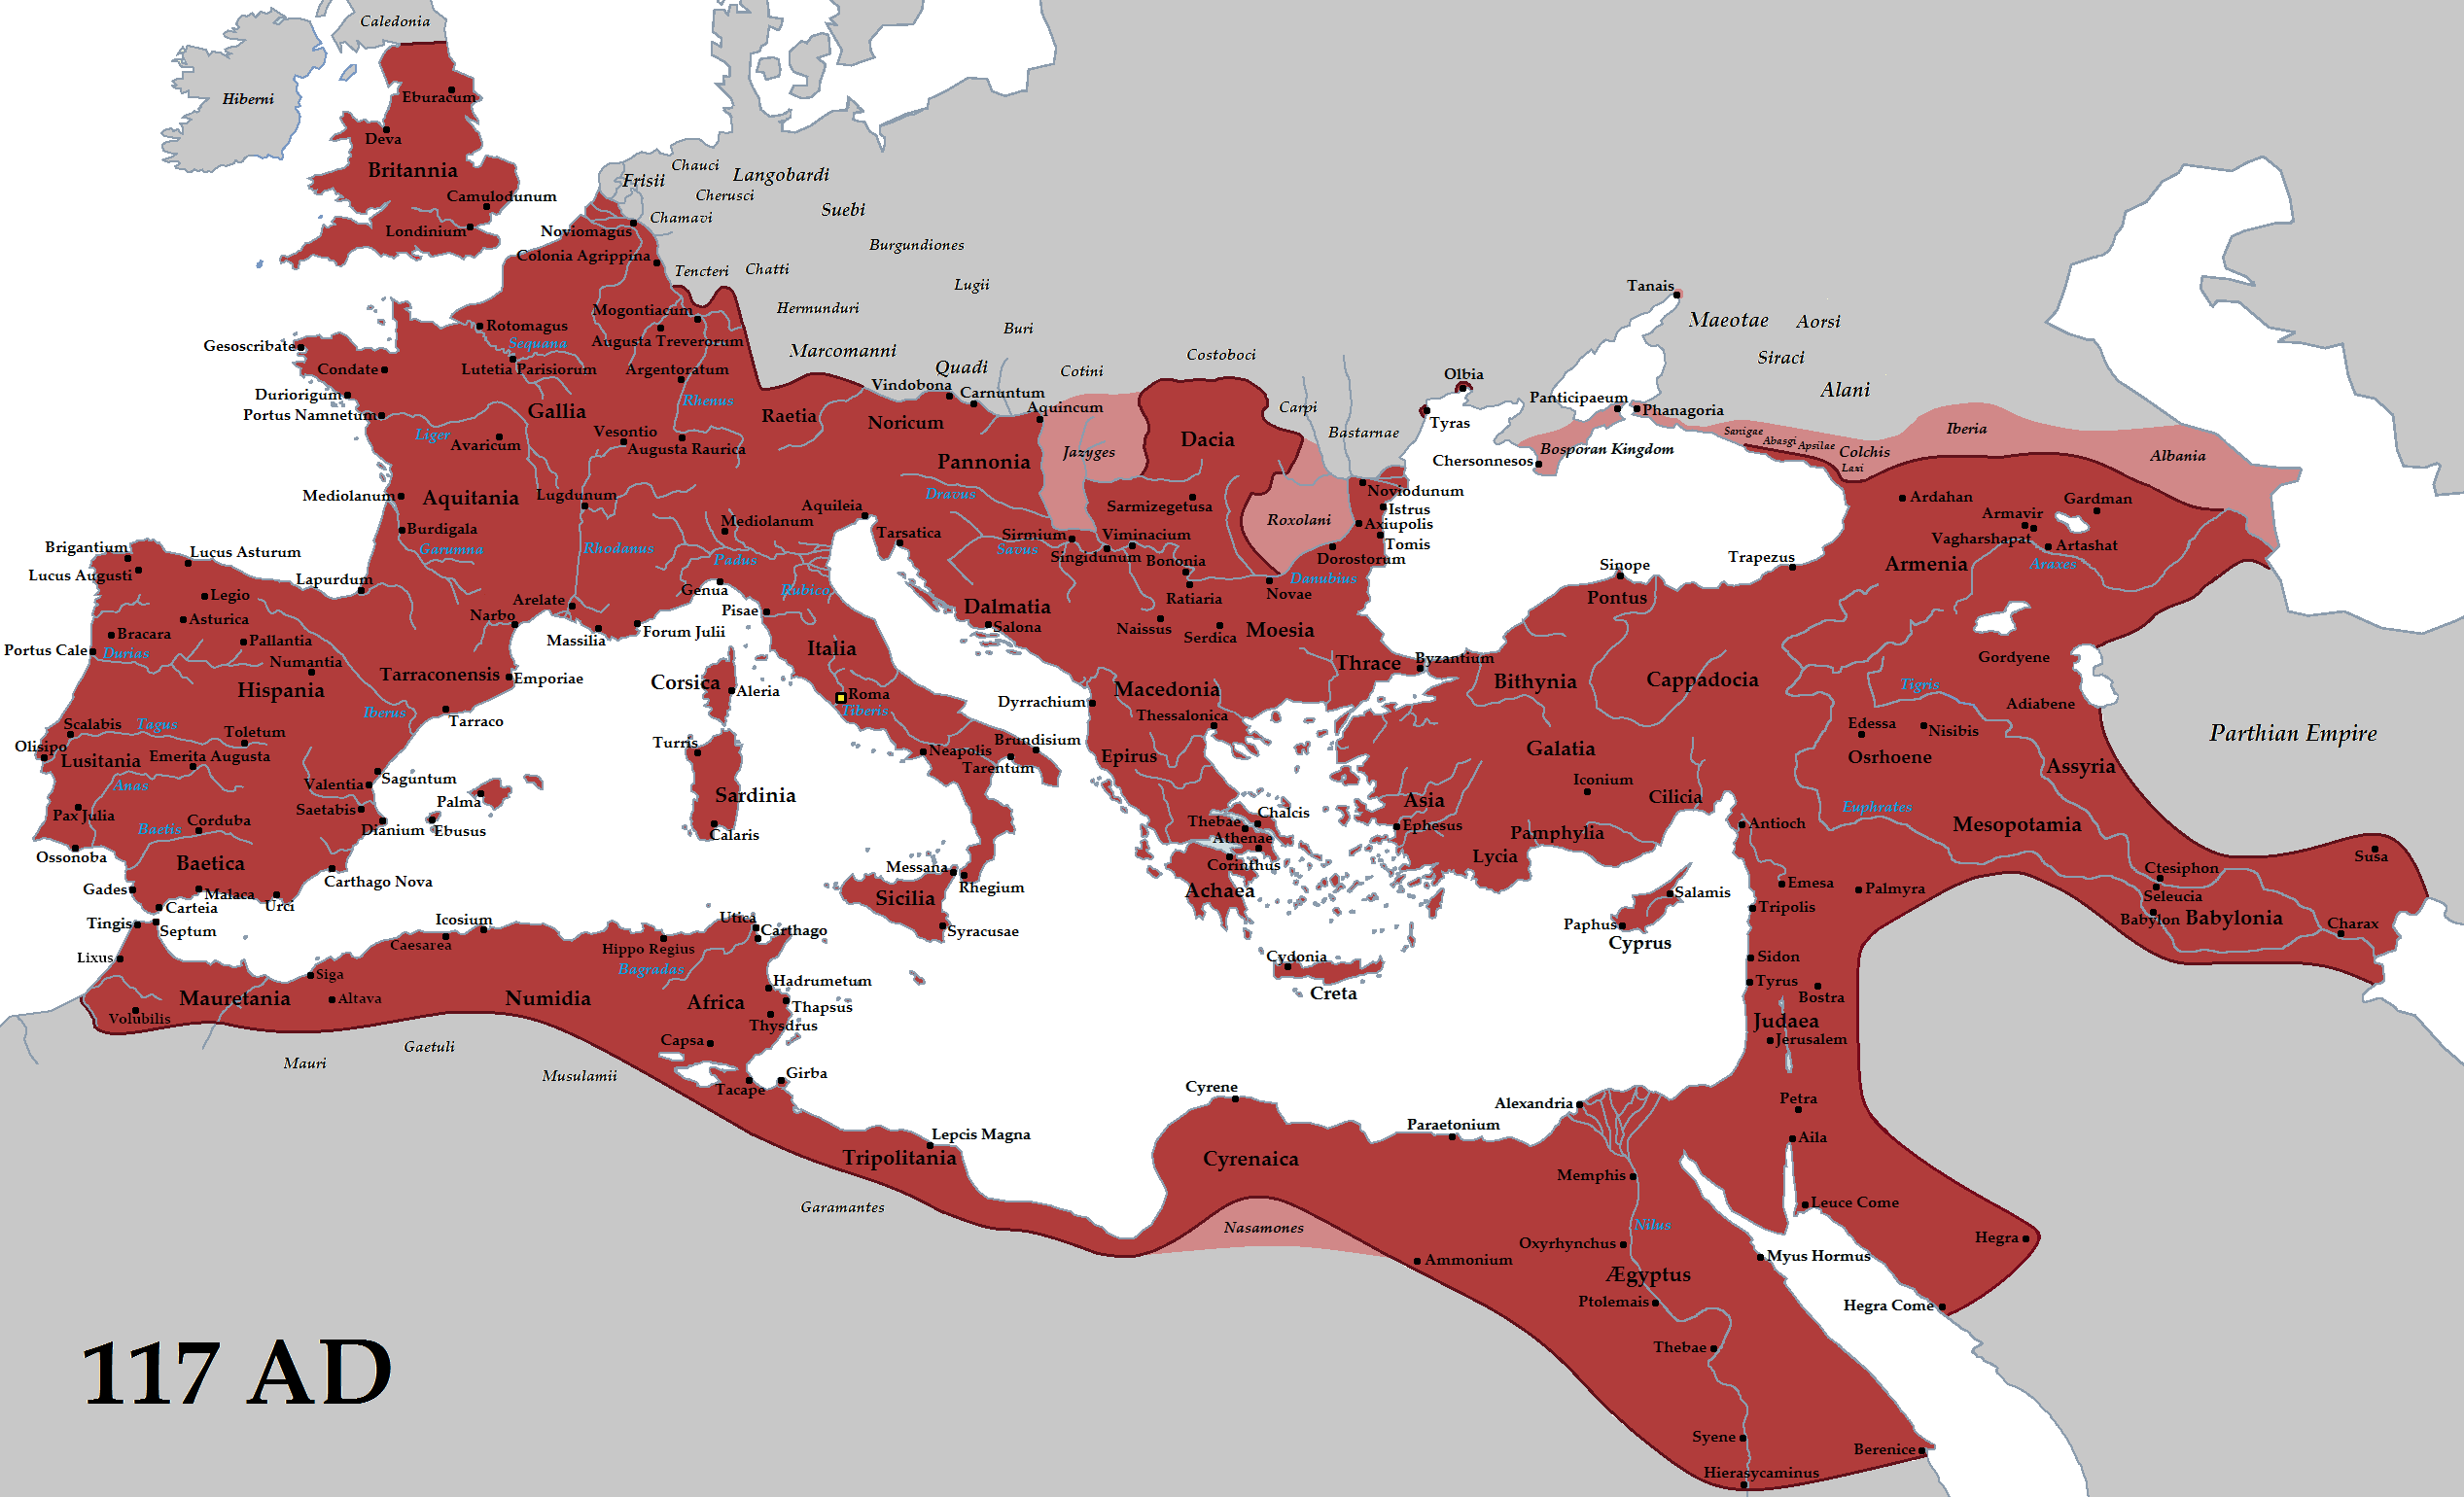 Roman Empire Trajan AD Roman Empire Wikipedia The Free - World's most powerful countries wiki